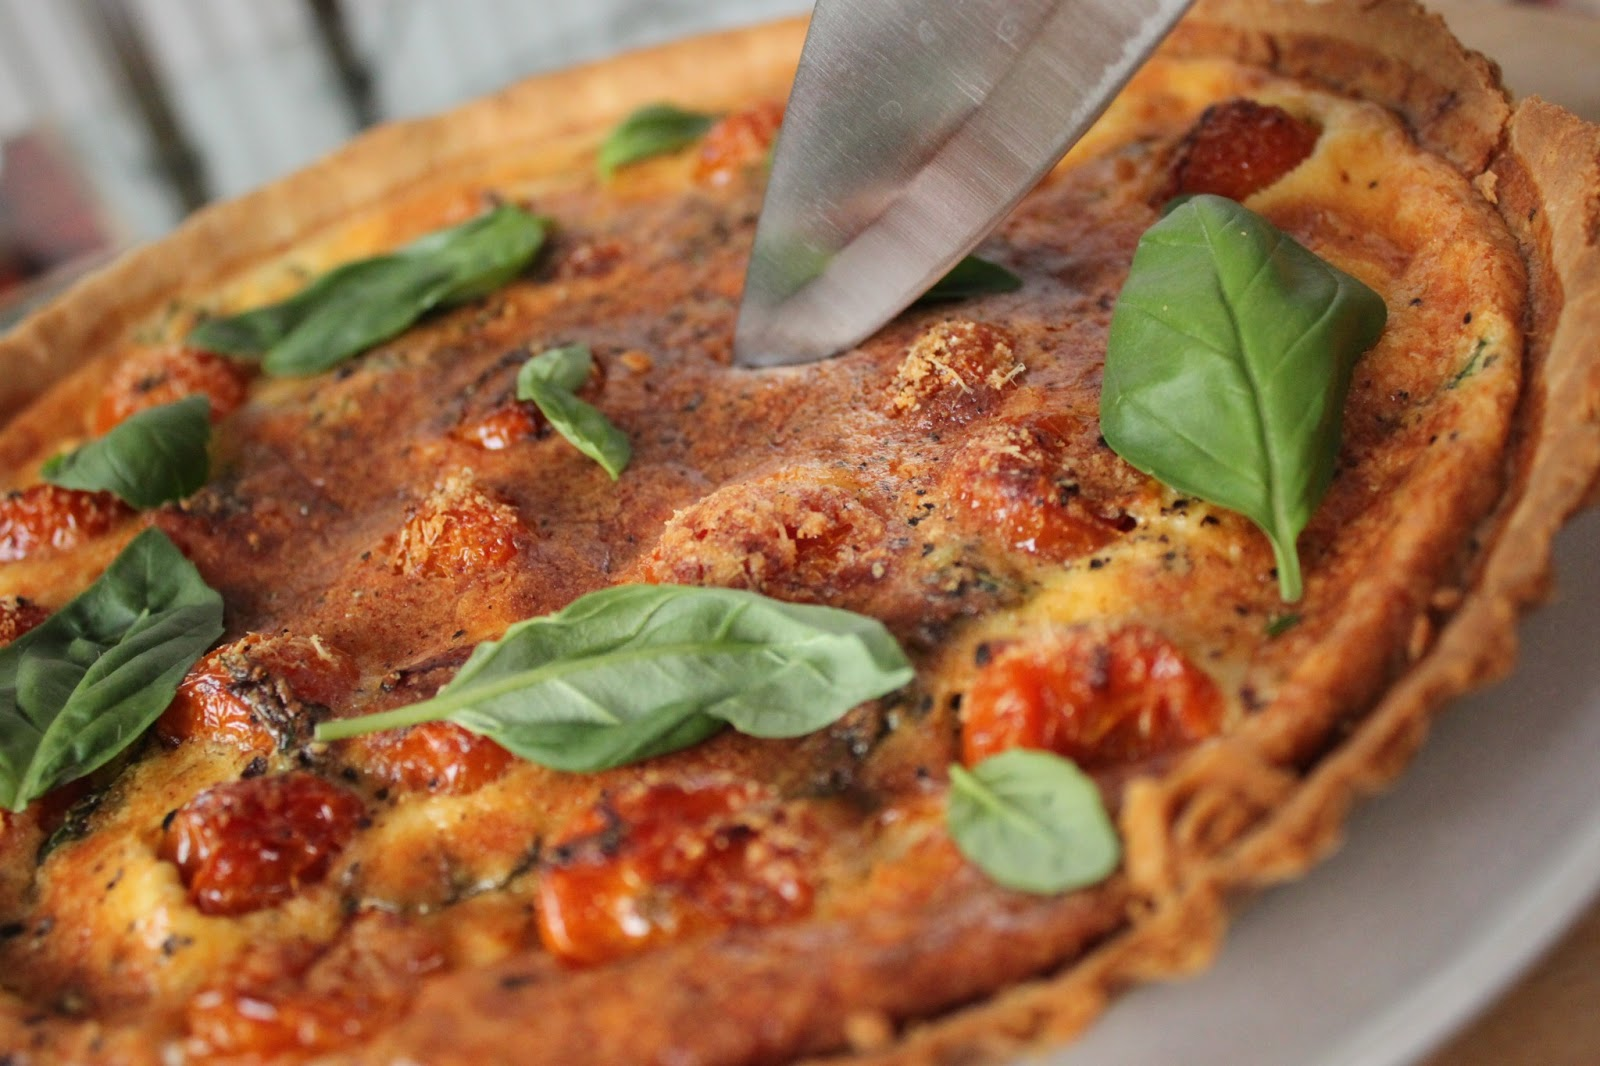 Roasted tomato basil parmesan quiche the small slice between my mother meghan and i we ate the whole quiche in one sitting oops it was lovely and i recommend the recipe to anyone attempting their first forumfinder Image collections